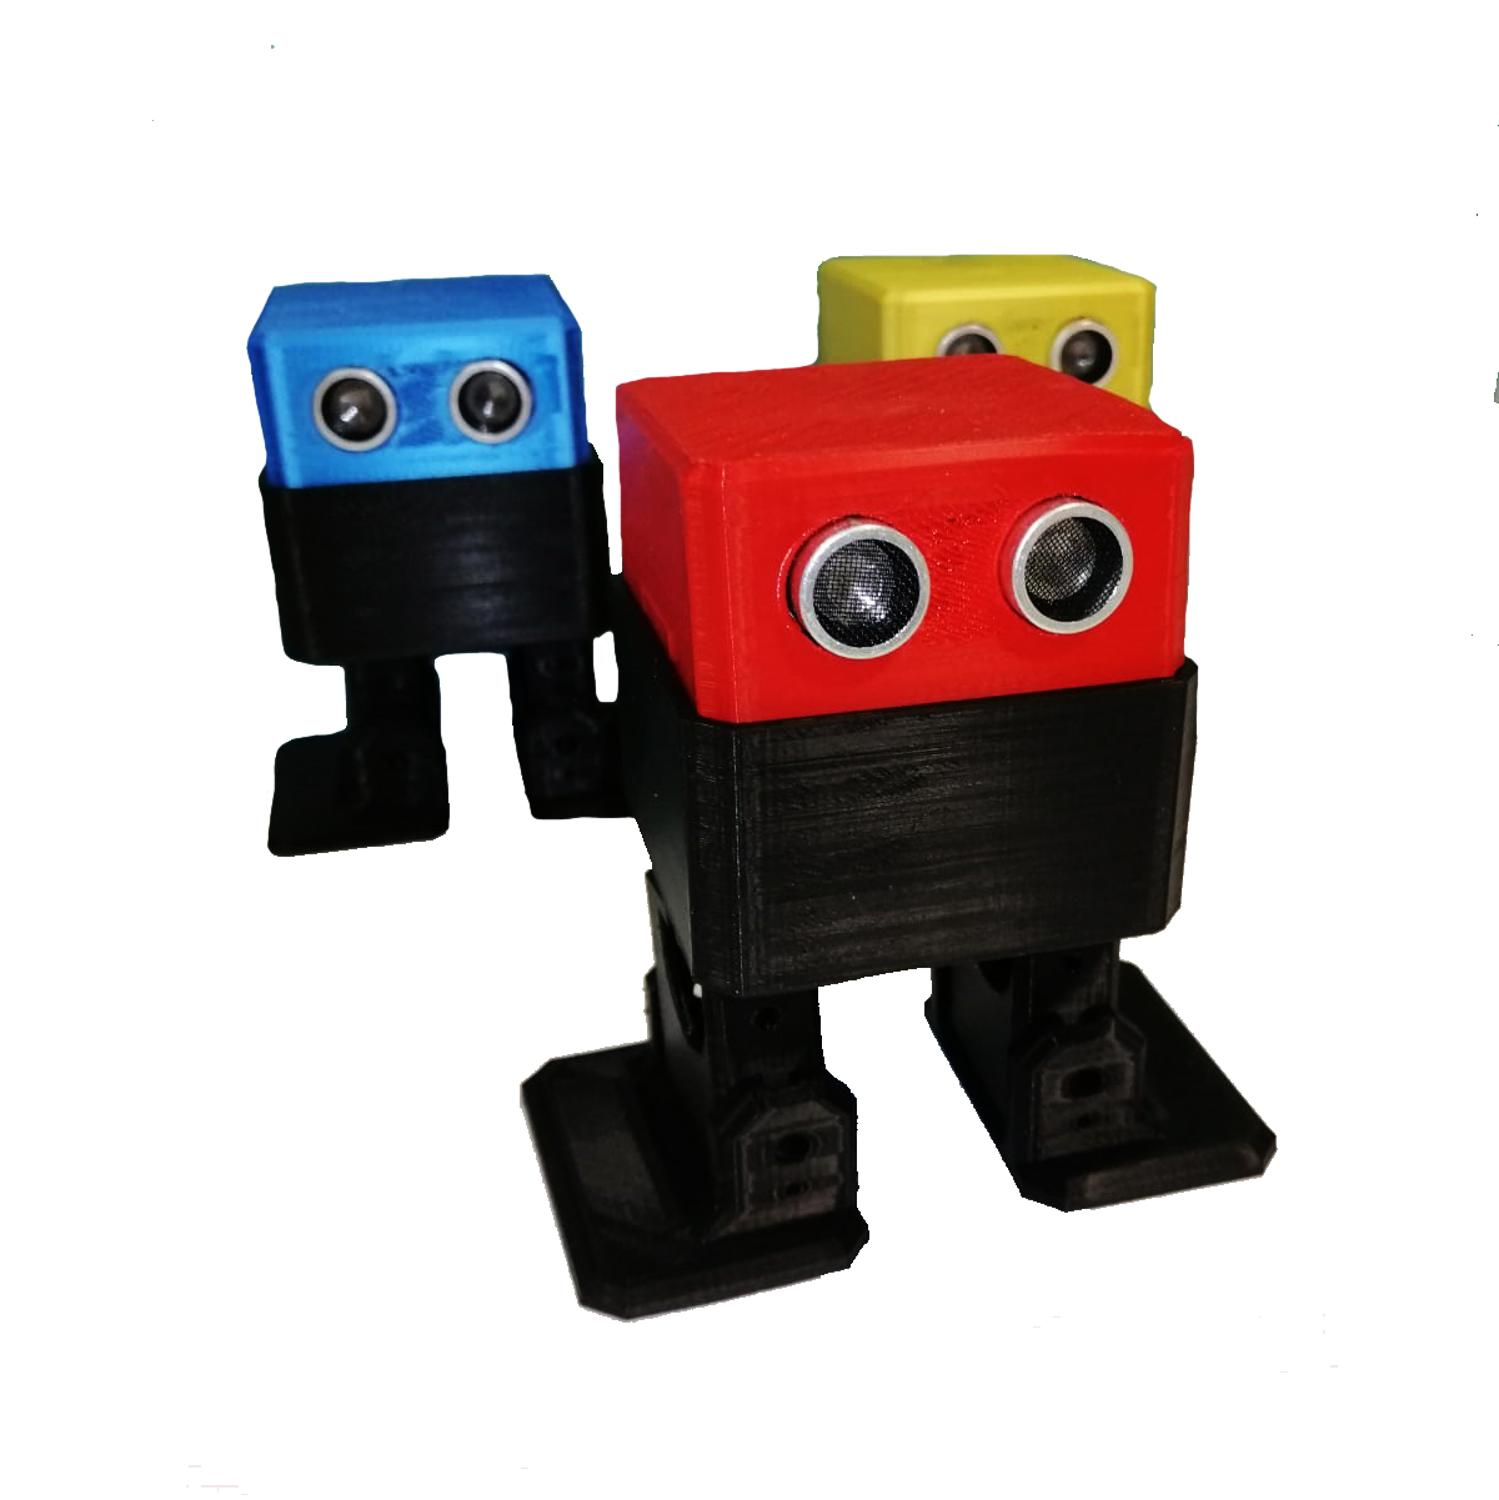 OTTO Robot Plastic Chassis - DIY Project Arduino UNO SG90 Servo Compatible Ultrasonic Sensor Robot Project for Beginners